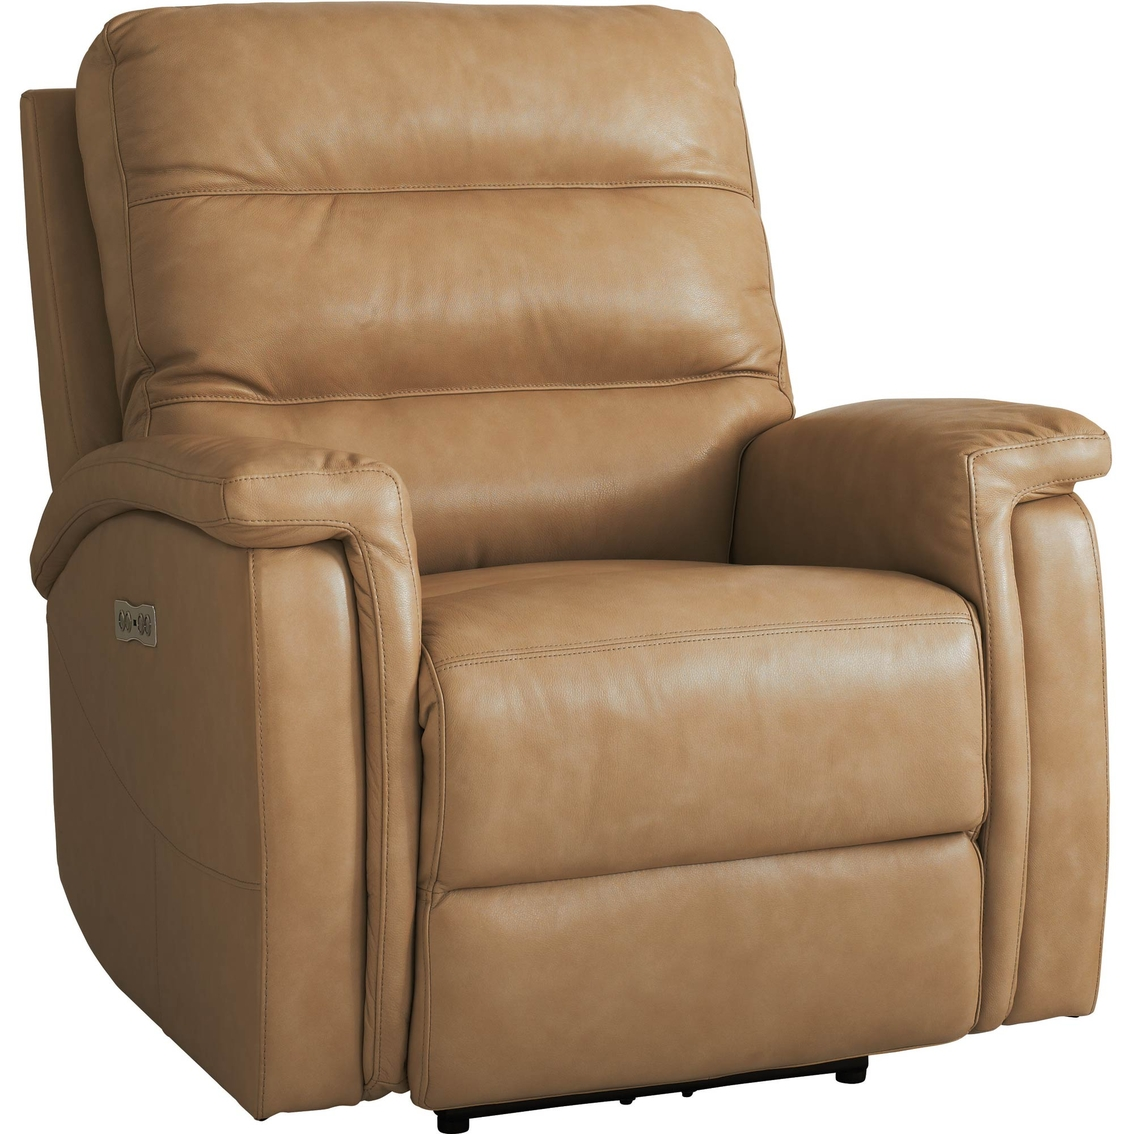 chairs adult recliners recliner marquee home bassett power wallsaver